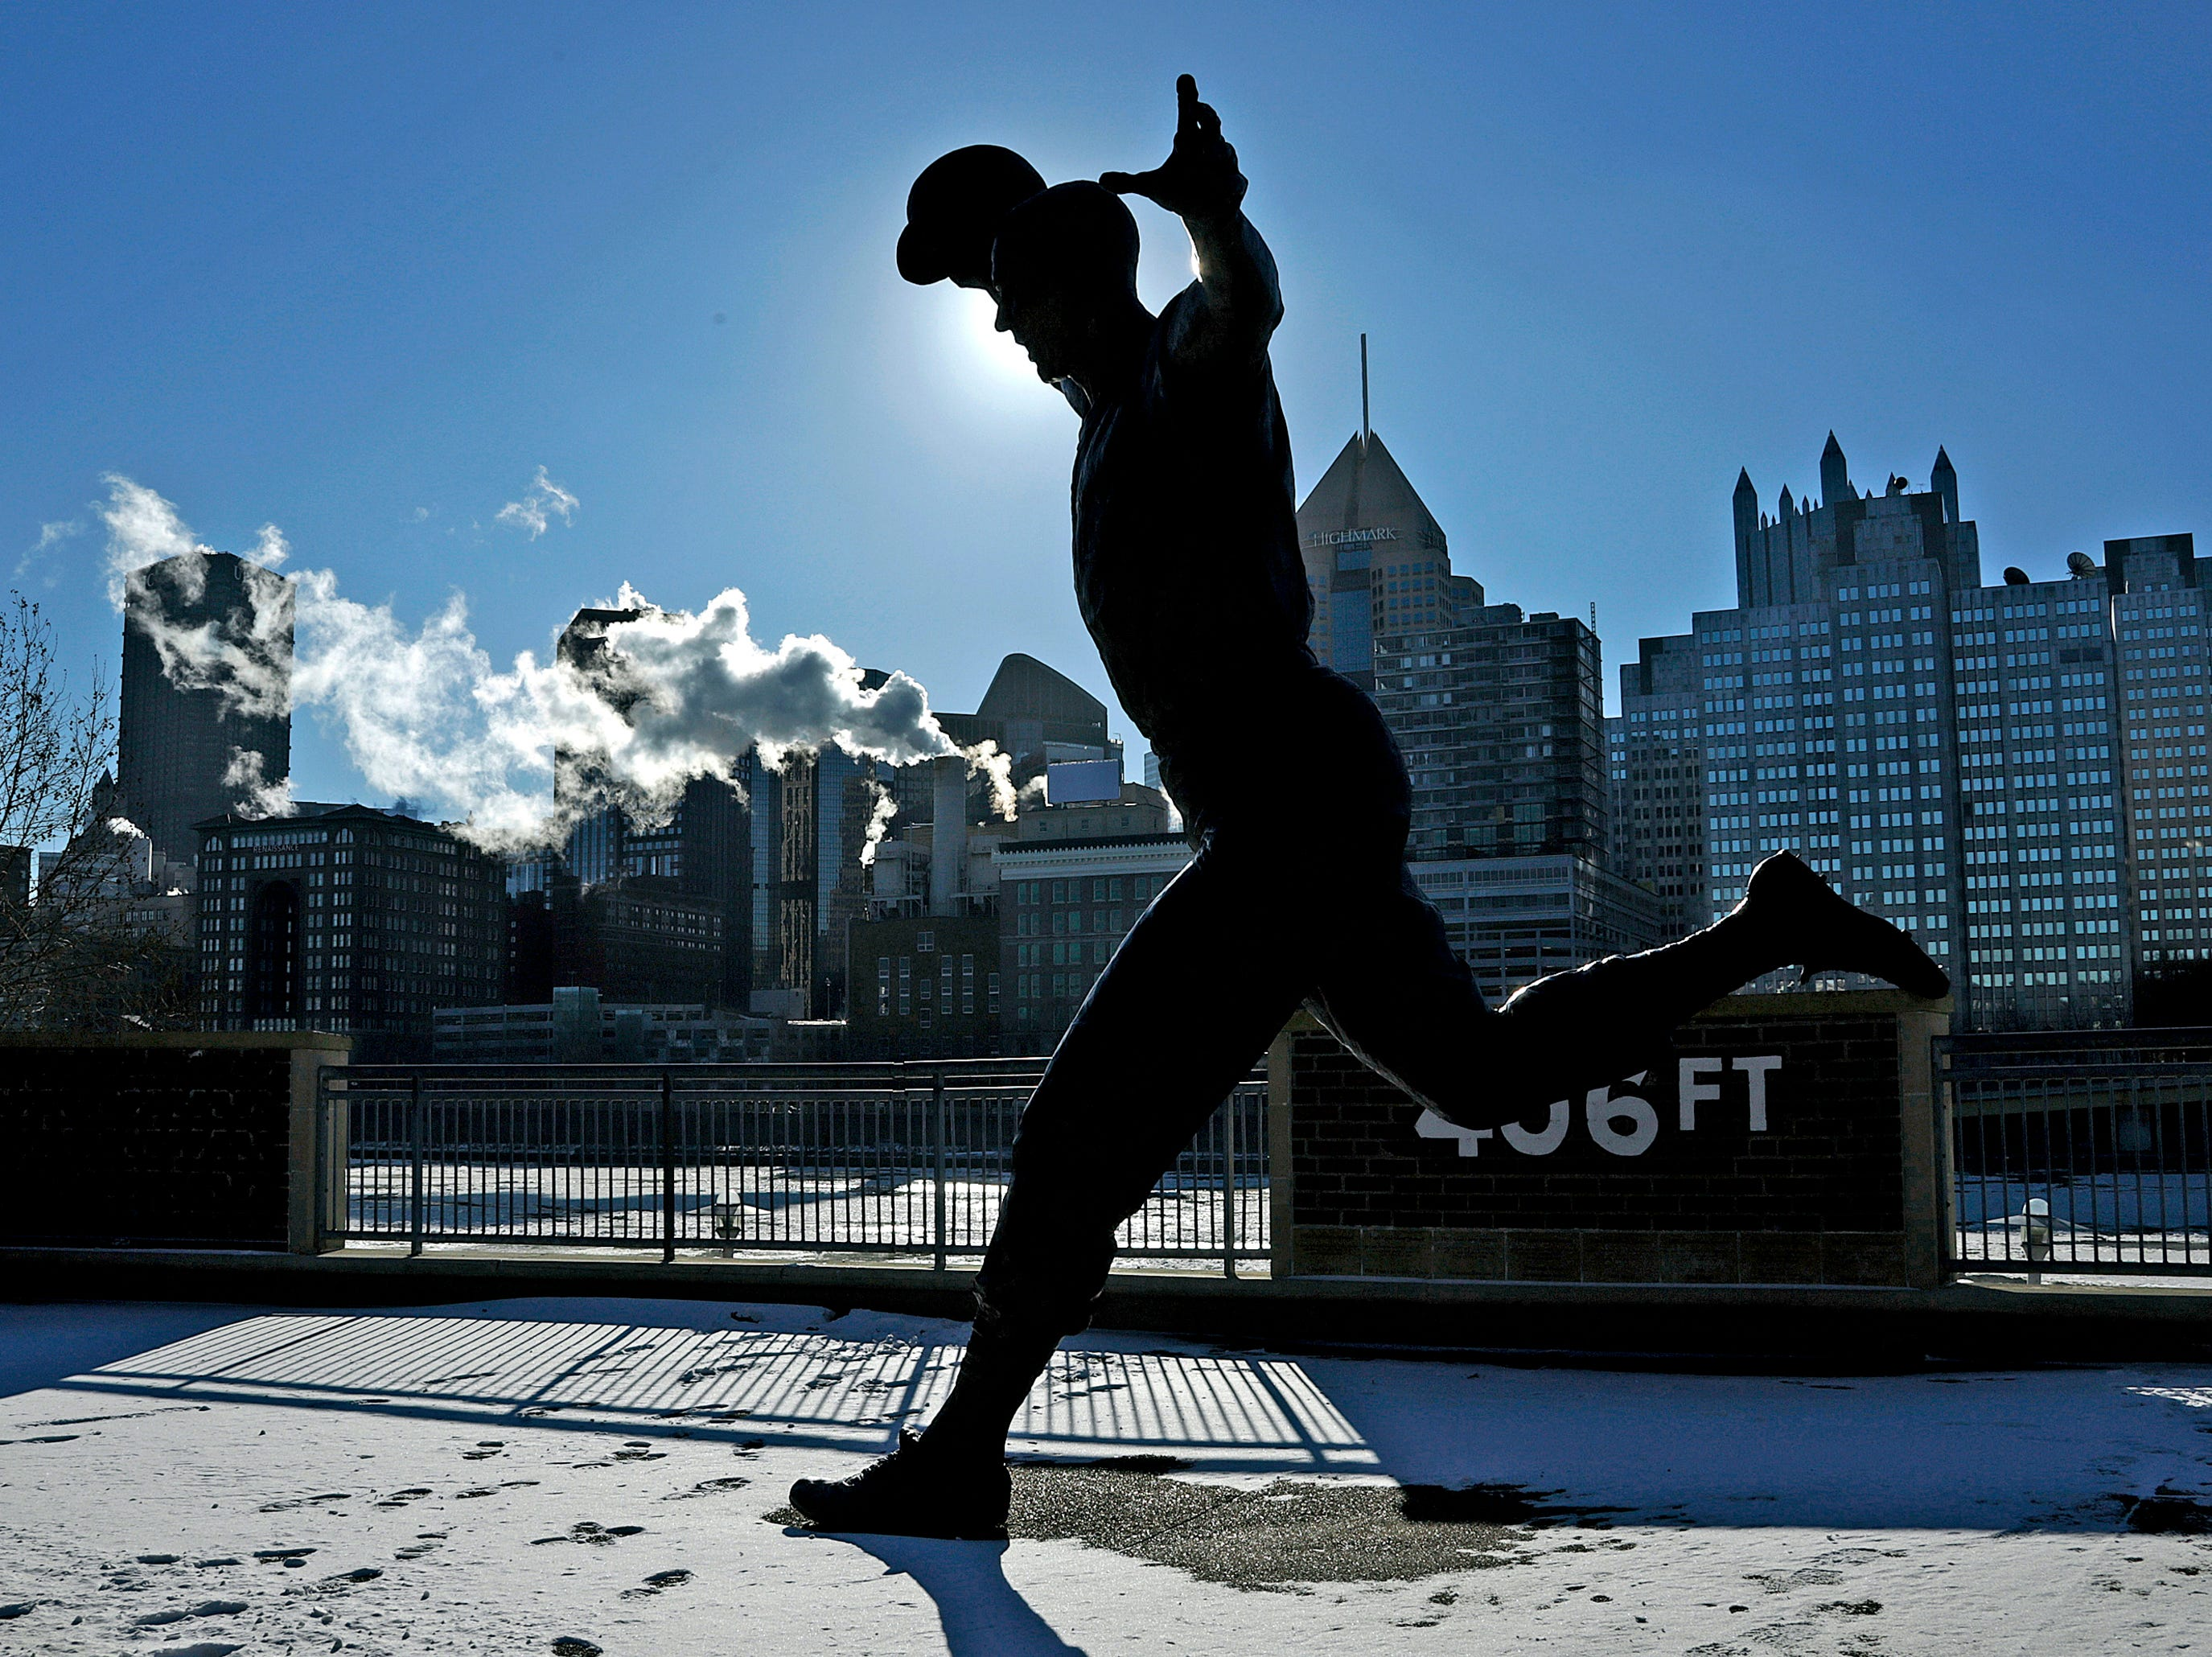 The sunrises over a statue of Pittsburgh Pirates Hall of Famer Bill Mazeroski on the Northside of Pittsburgh on Thursday, Jan 31, 2019. The temperature in Pittsburgh dropped to minus 4 late Wednesday, breaking an 85-year-old record low for Jan. 30 of minus 1 degree.